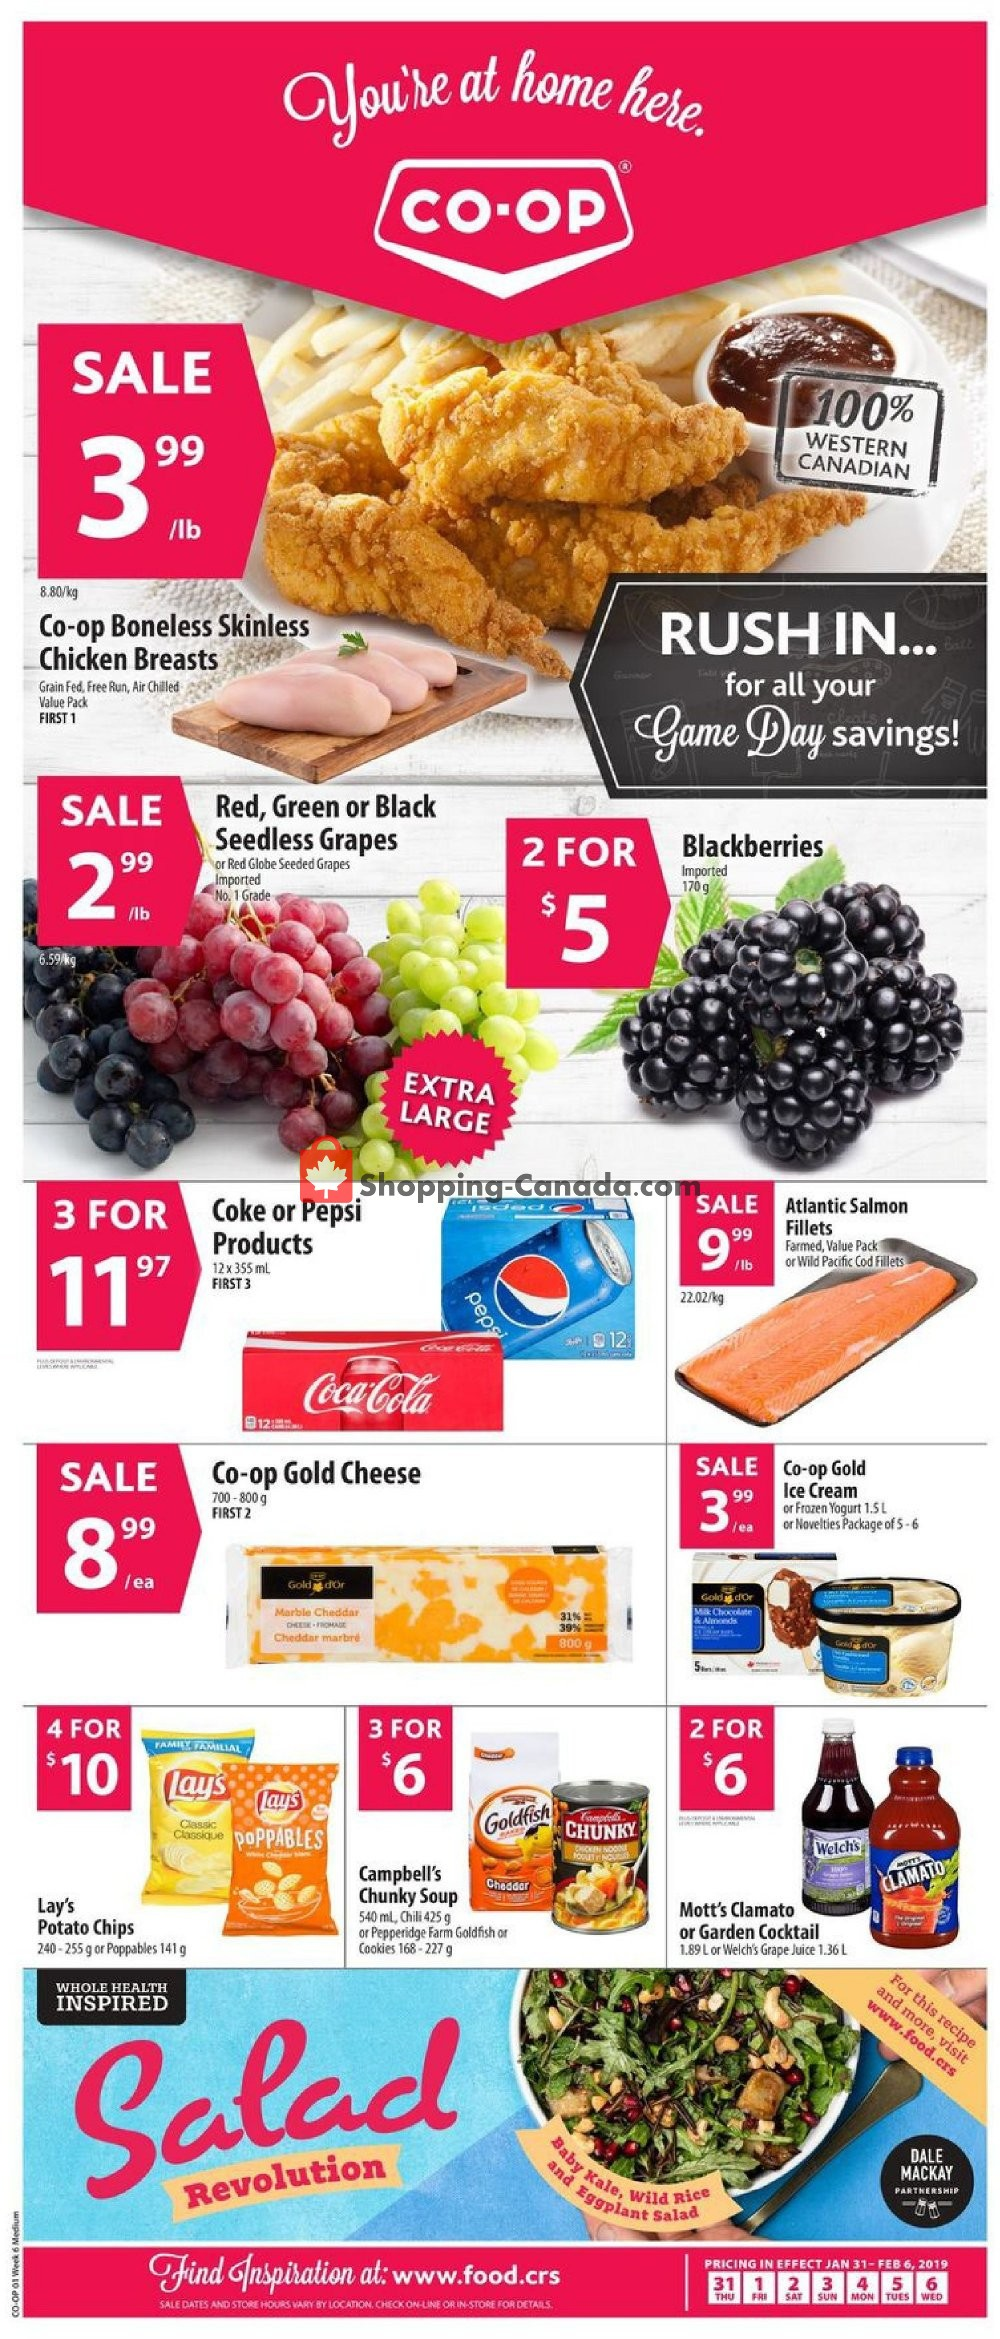 Flyer Co-op Canada - from Thursday January 31, 2019 to Wednesday February 6, 2019